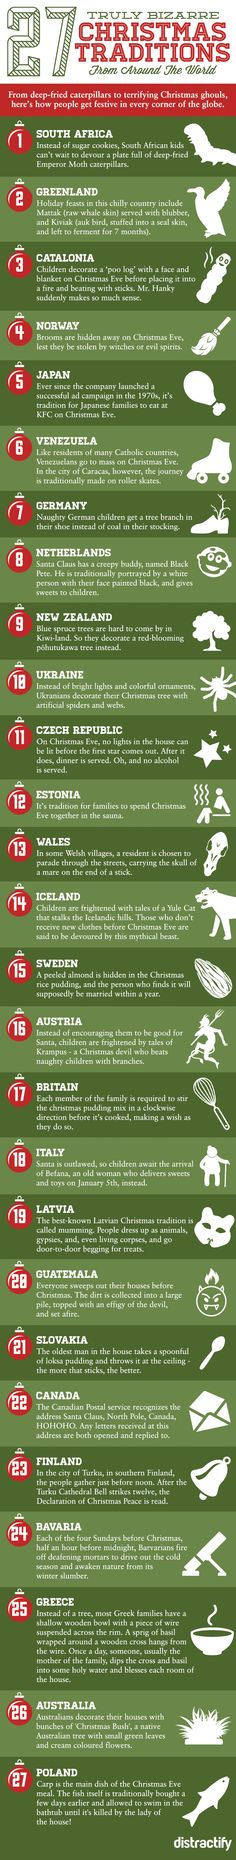 27 Truly Bizarre Christmas Traditions from around the World